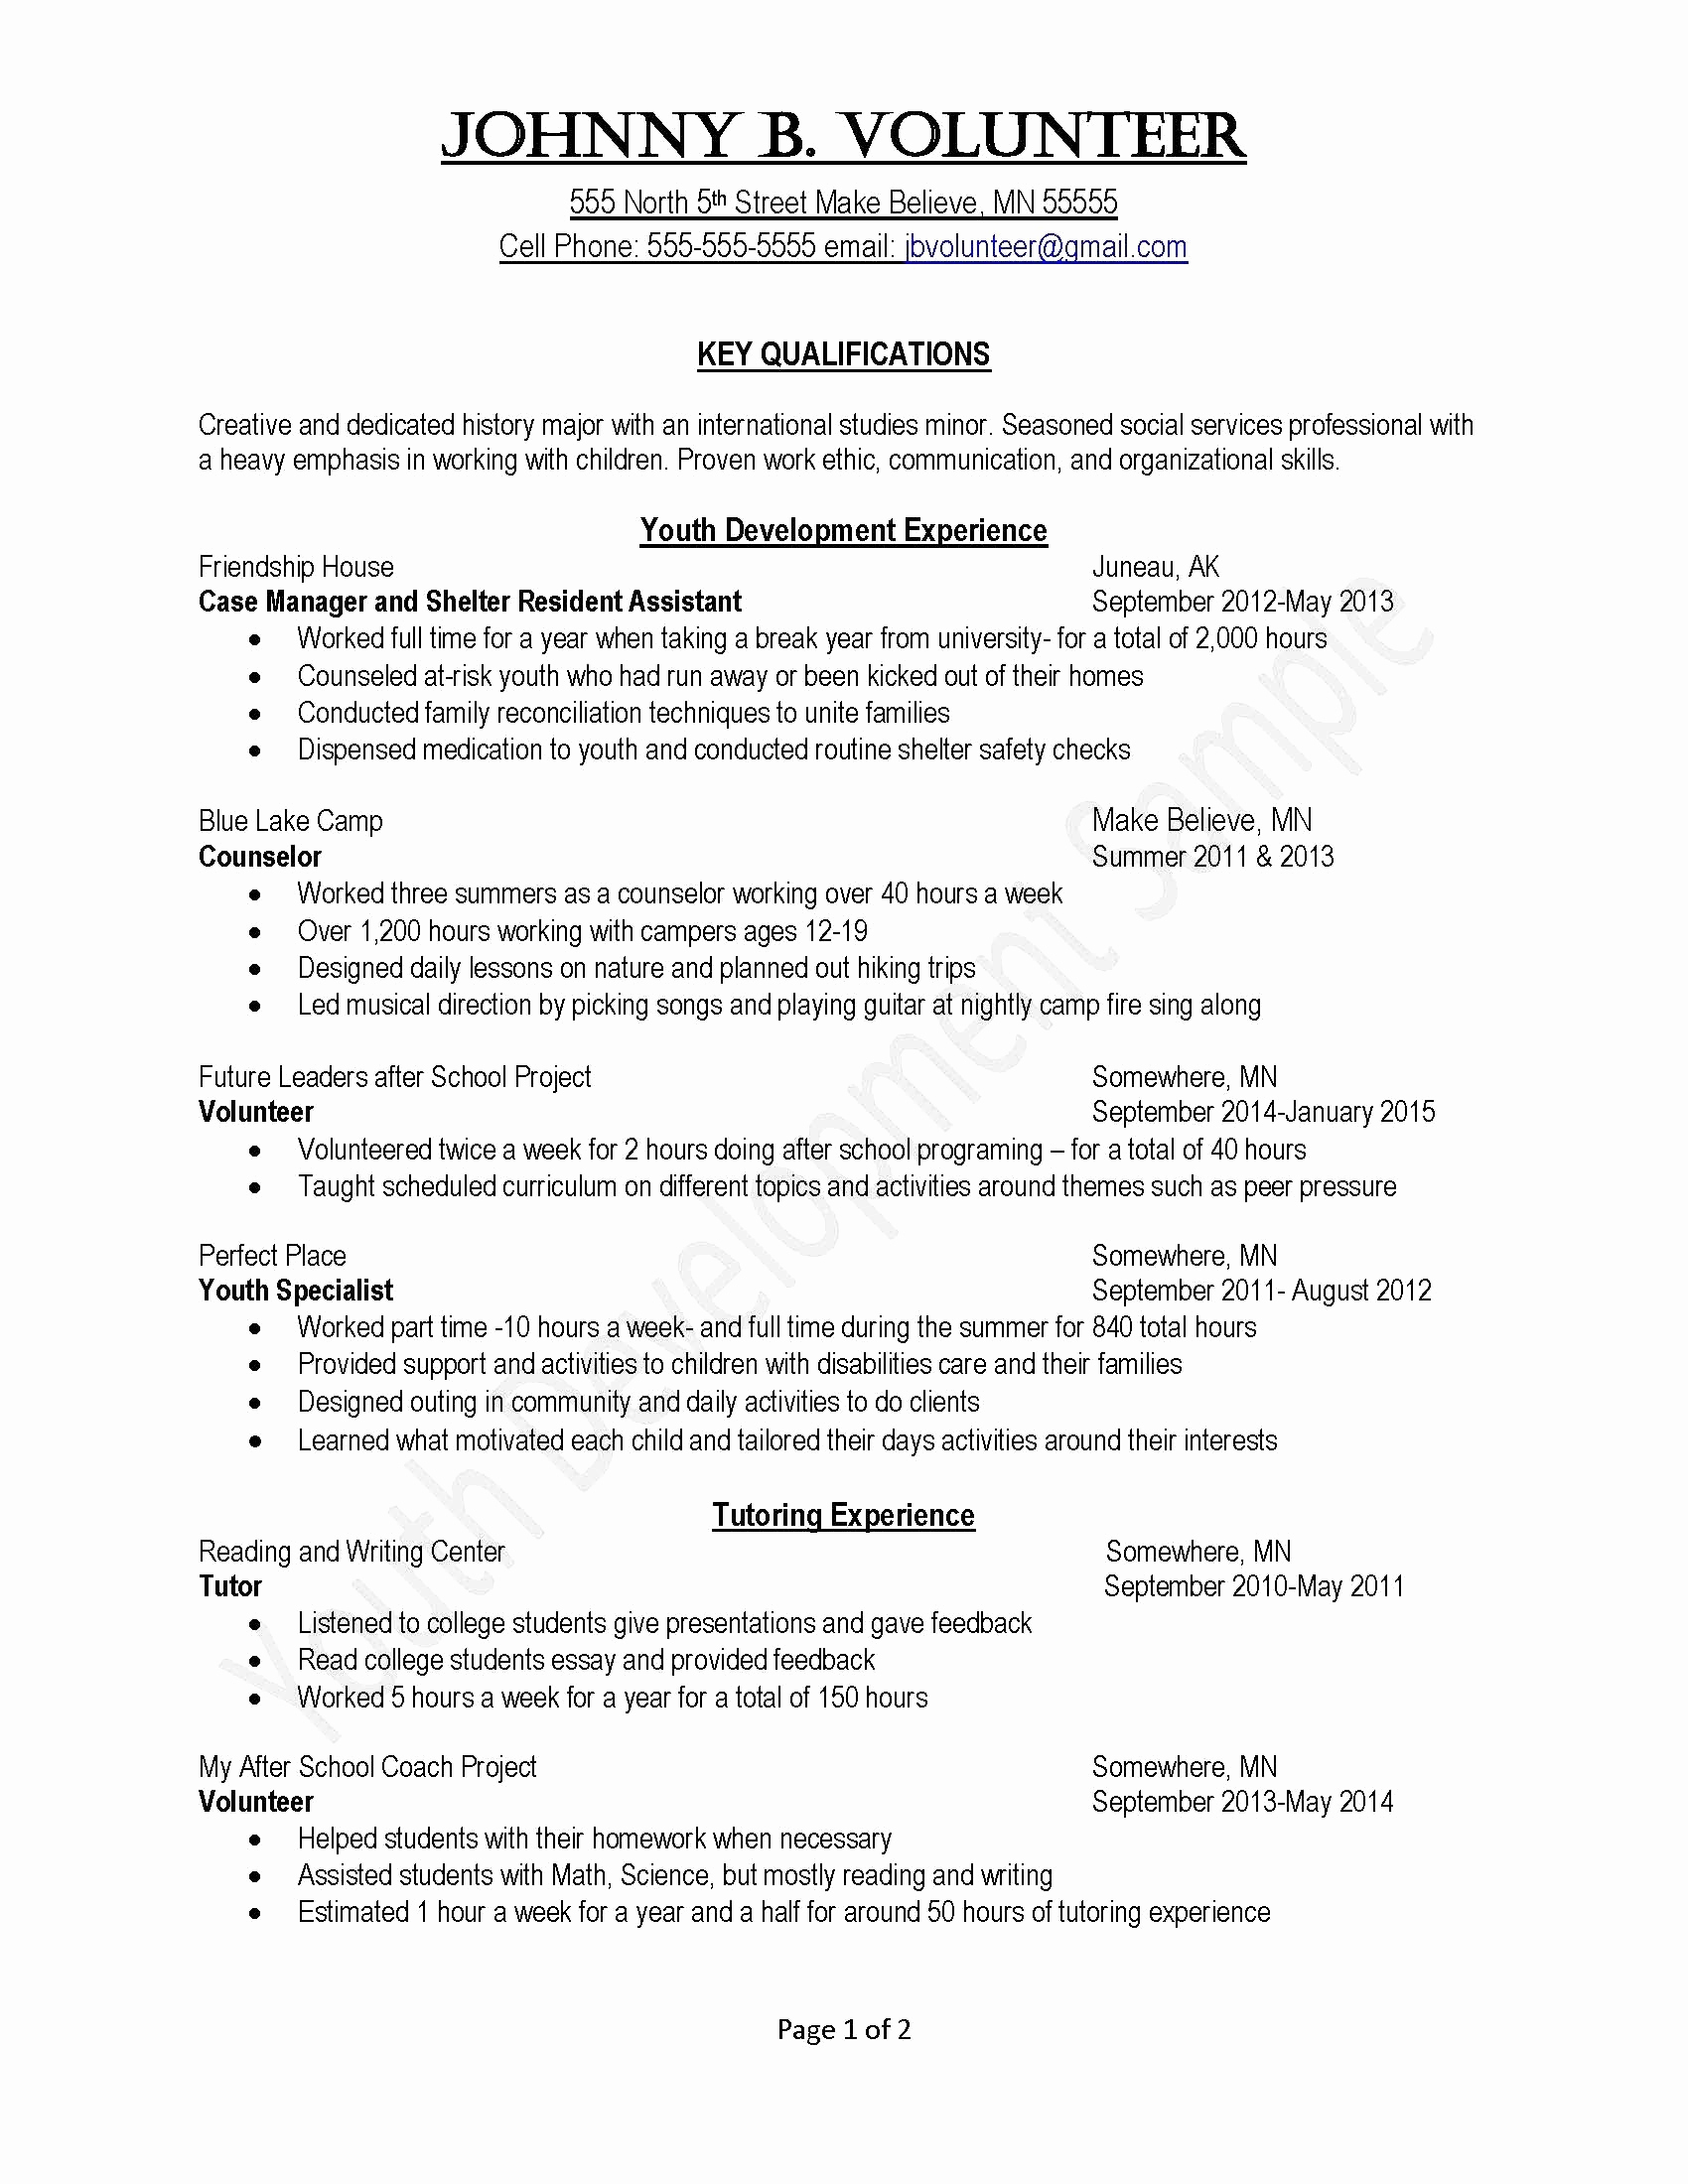 Successful Cover Letter Template - Good Cover Letters for Jobs Unique Simple Cover Letter Template